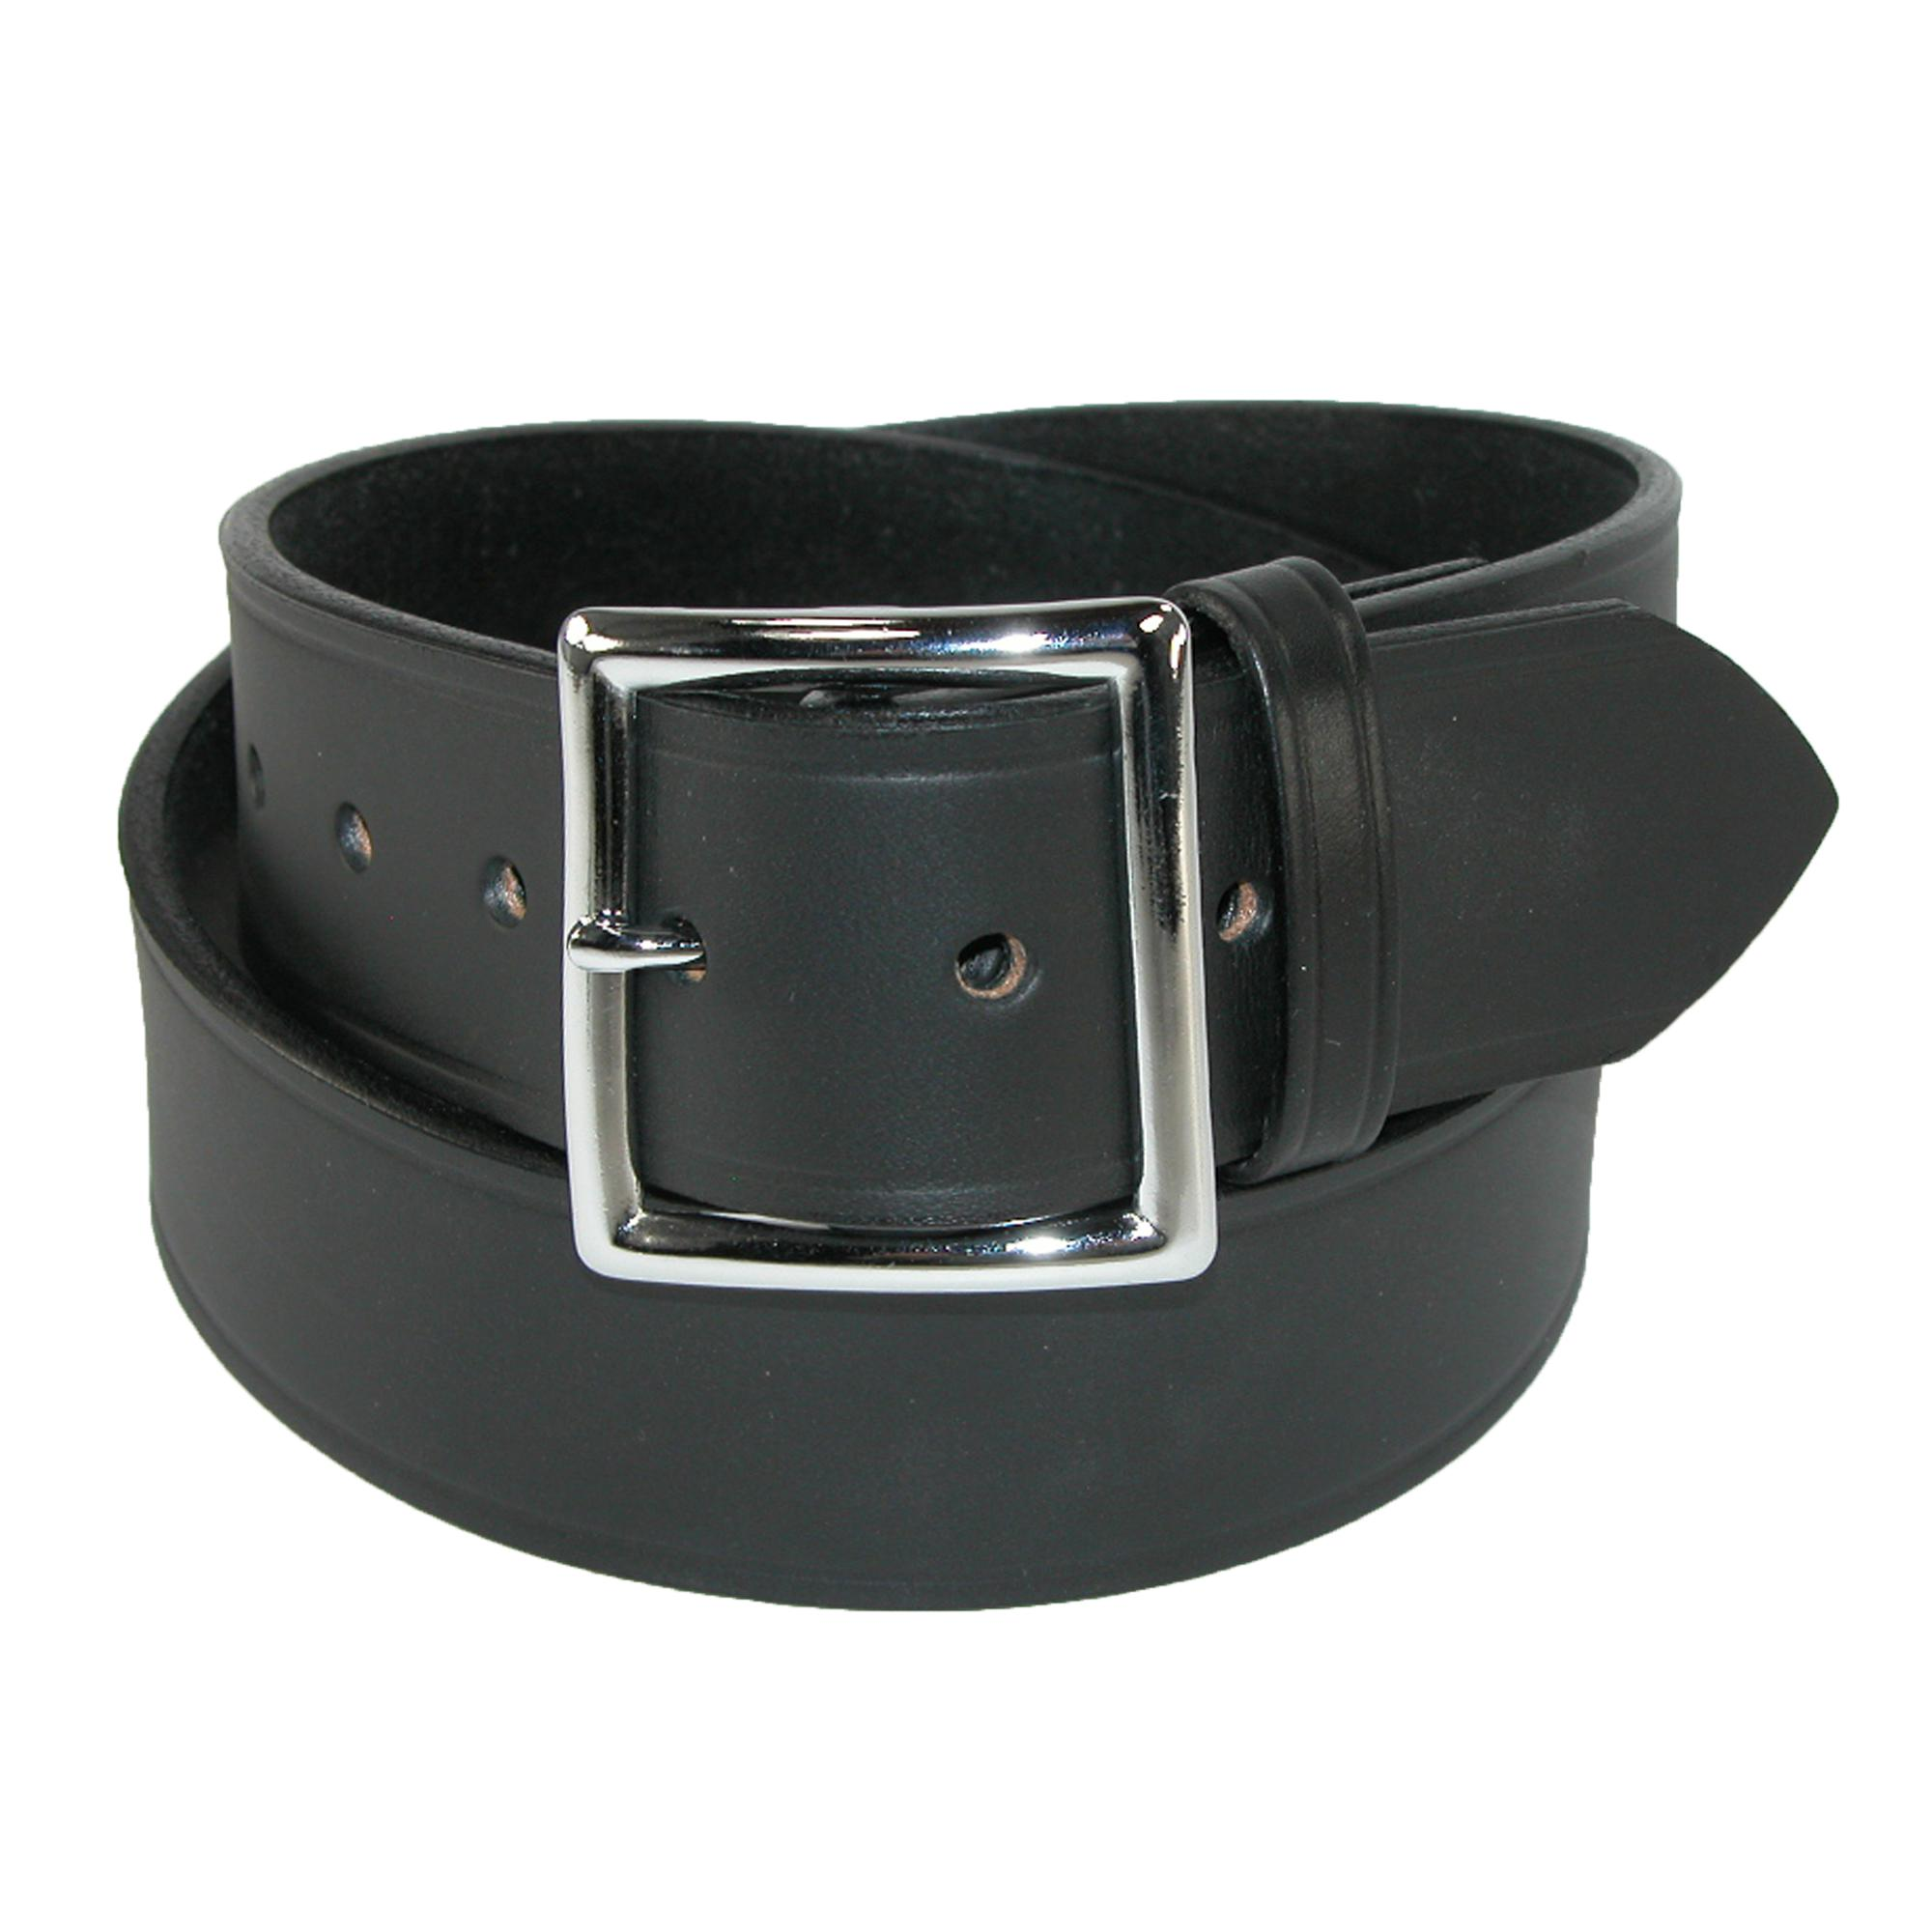 Boston Leather Men's Leather 1 3/4 Inch Garrison Belt